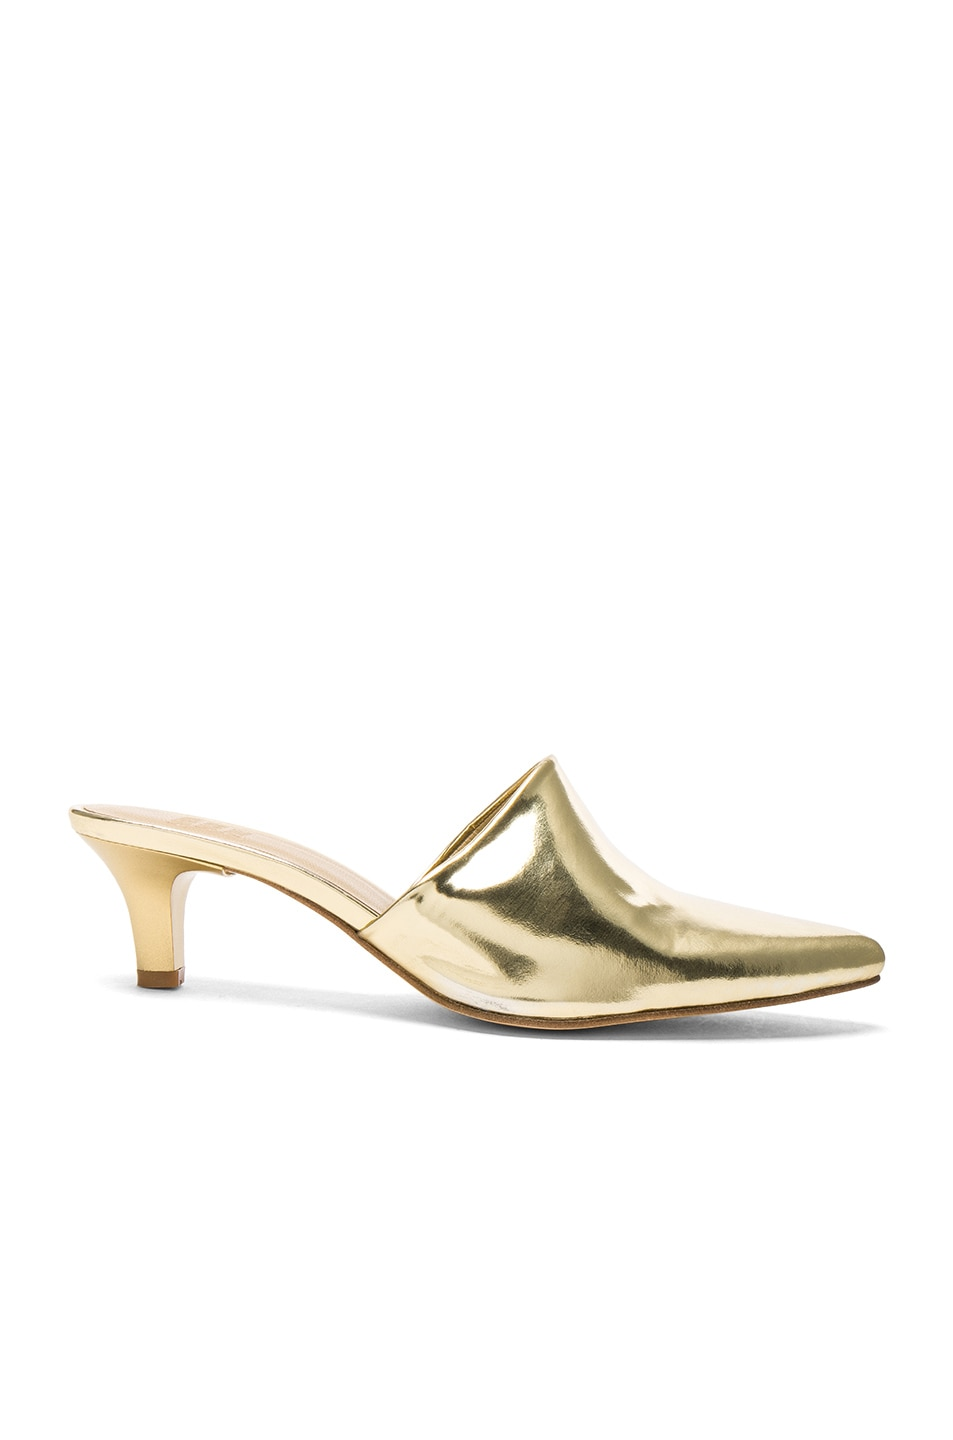 Image 1 of Maryam Nassir Zadeh Leather Andrea Mules in Gold Metallic